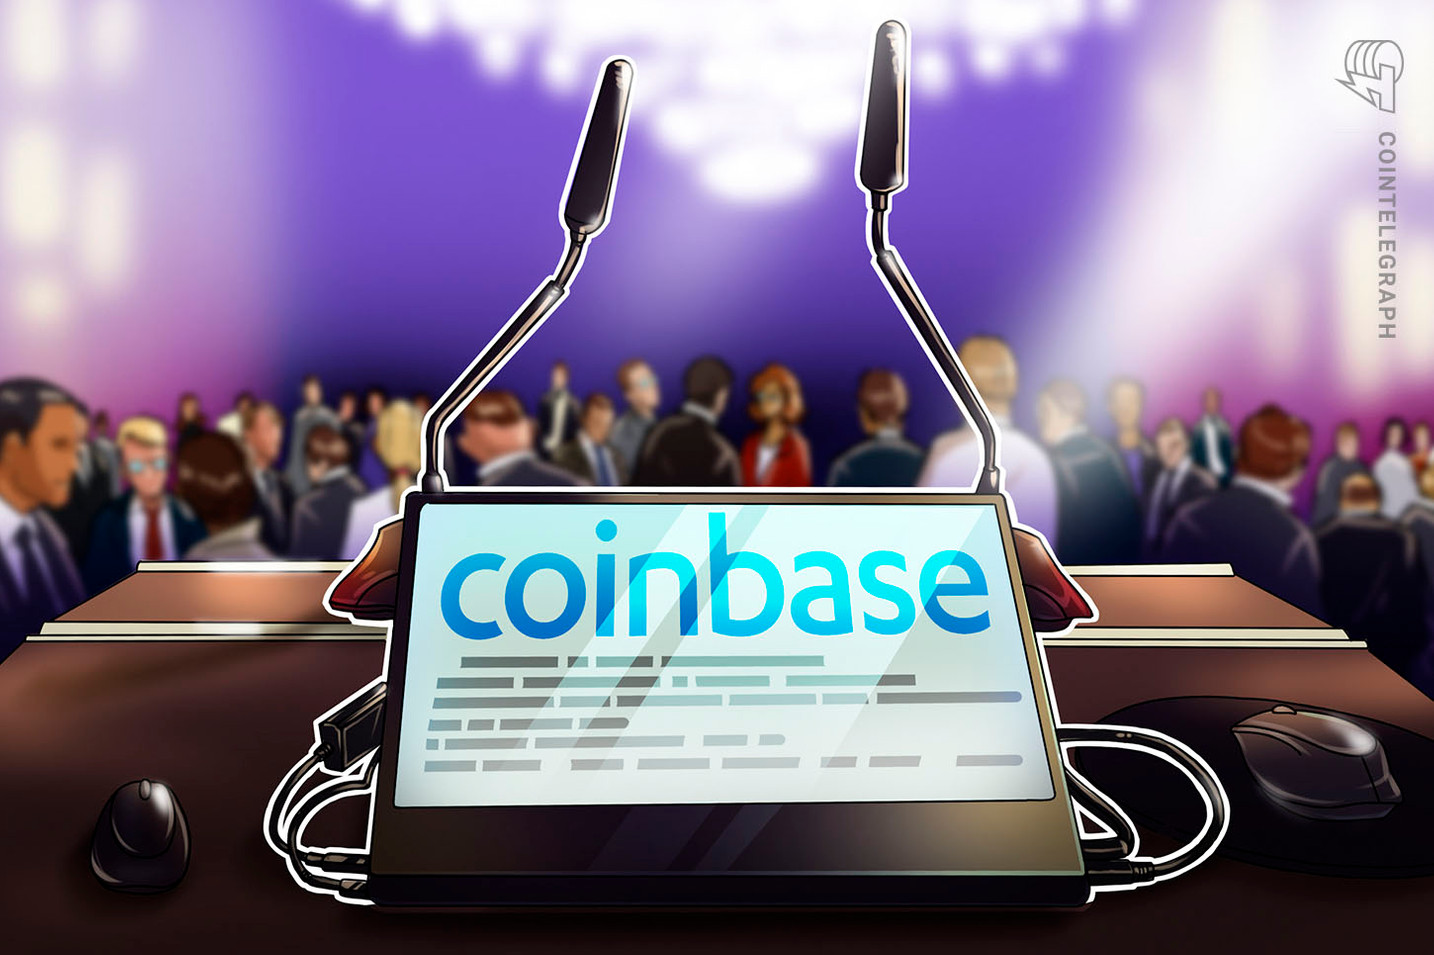 Coinbase warns users of connectivity issues due to Amazon AWS outage